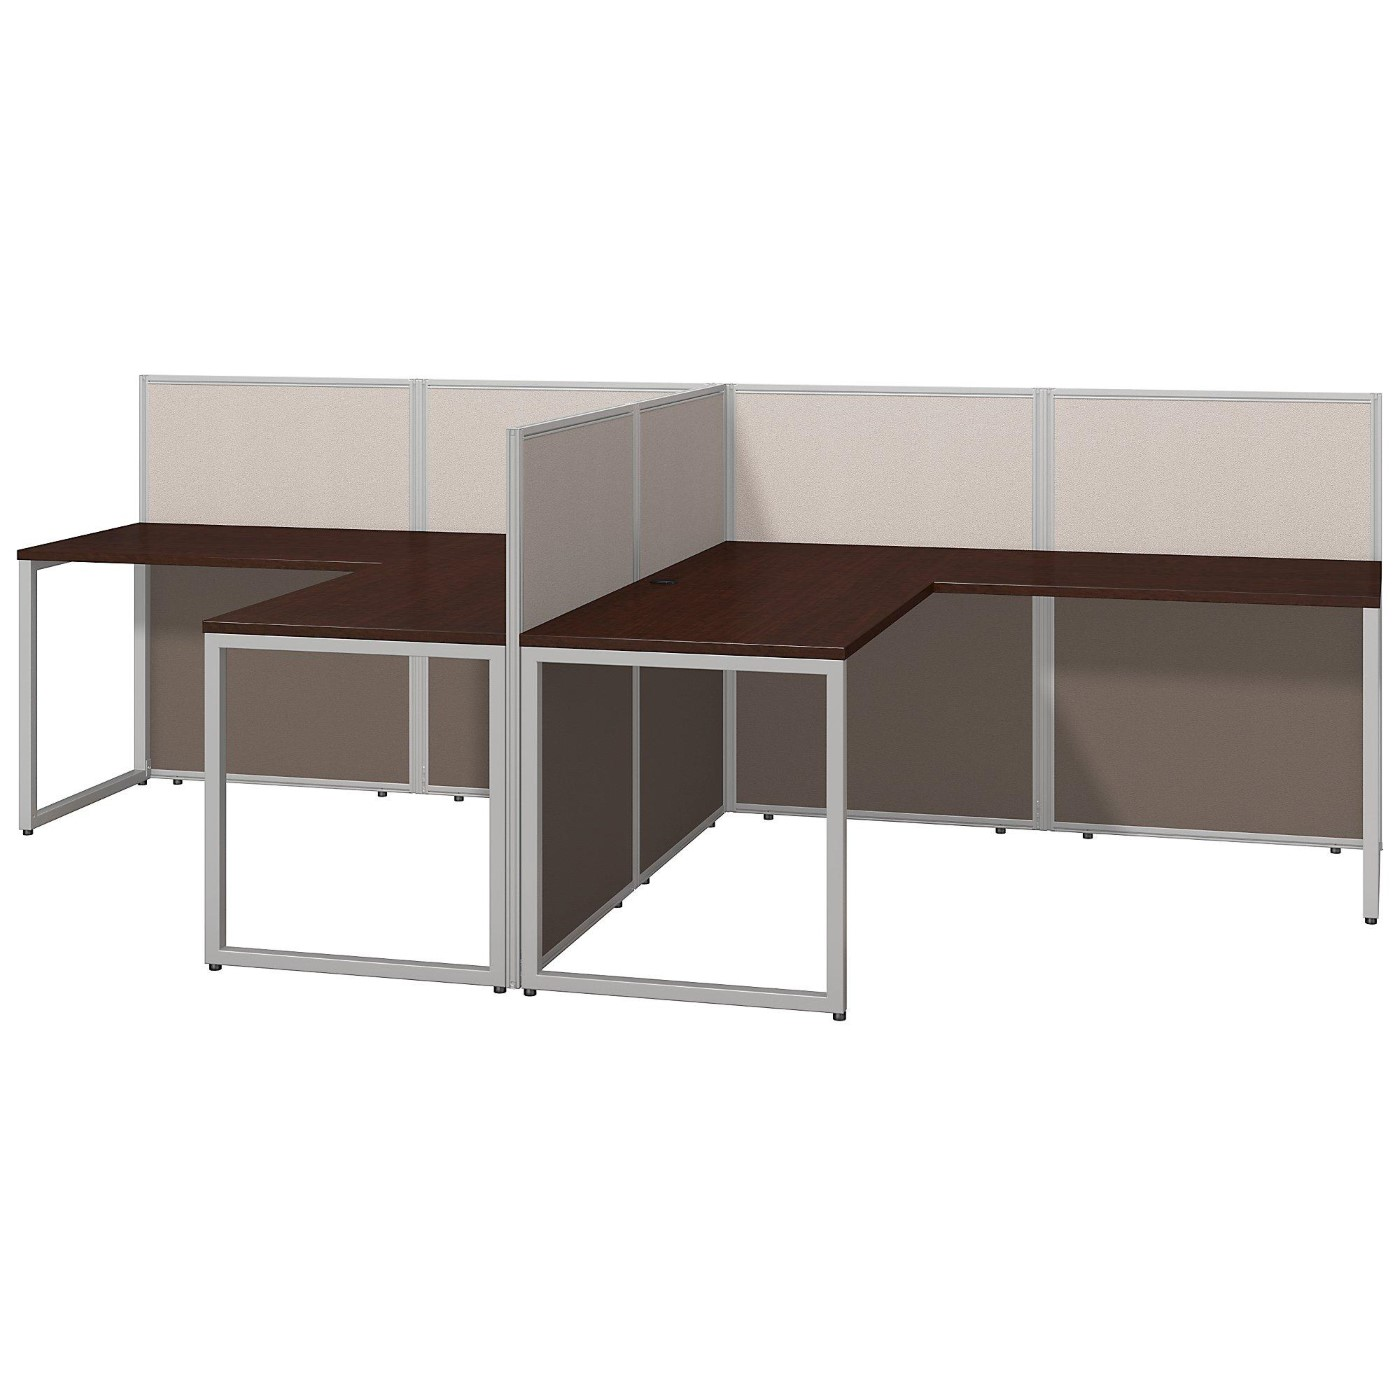 <font color=#c60><b>BUSH BUSINESS FURNITURE EASY OFFICE 60W TWO PERSON L SHAPED DESK OPEN OFFICE. FREE SHIPPING</font></b></font></b>